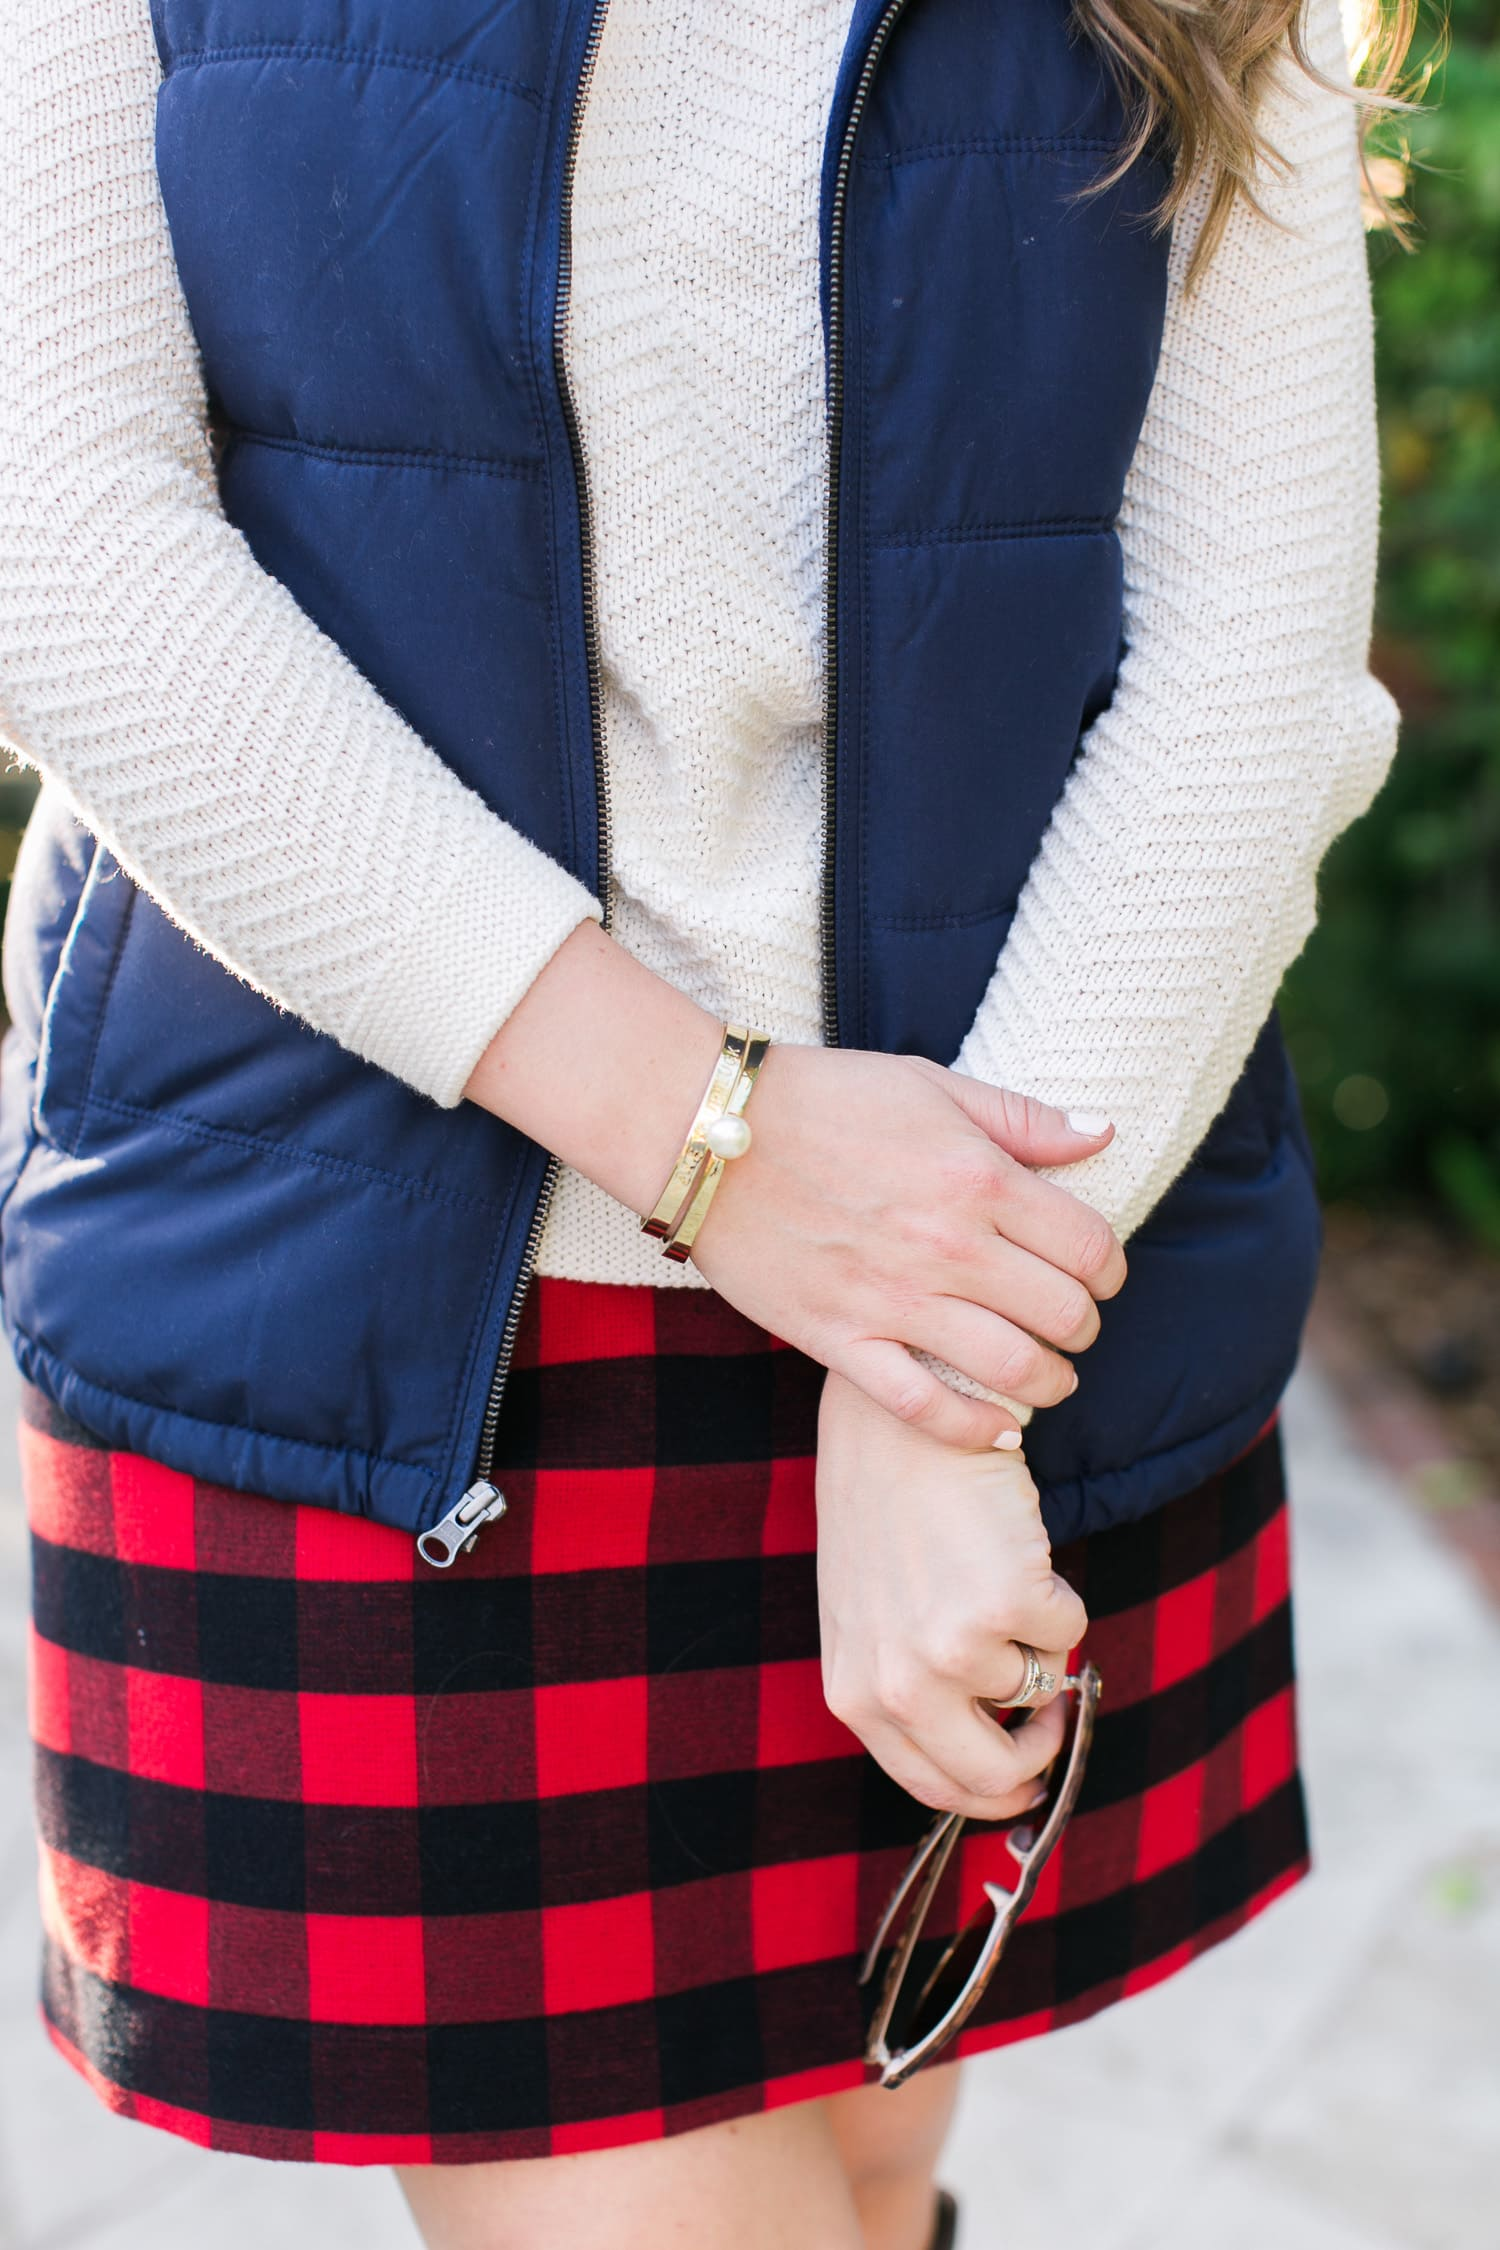 A cozy fall outfit + the best Gap and Old Navy Black Friday Deals +  get $20 back with any $50 purchase at Gap Inc with your Marriott Rewards Premier Card. Preppy fall outfit idea featuring Old Navy navy puffer vest, cream sweater, red plaid skirt, Adia Kibur gold pearl bracelet, an a Mudpie gold engraved Make Your Luck bracelet styled by Florida fashion blogger Ashley Brooke Nicholas